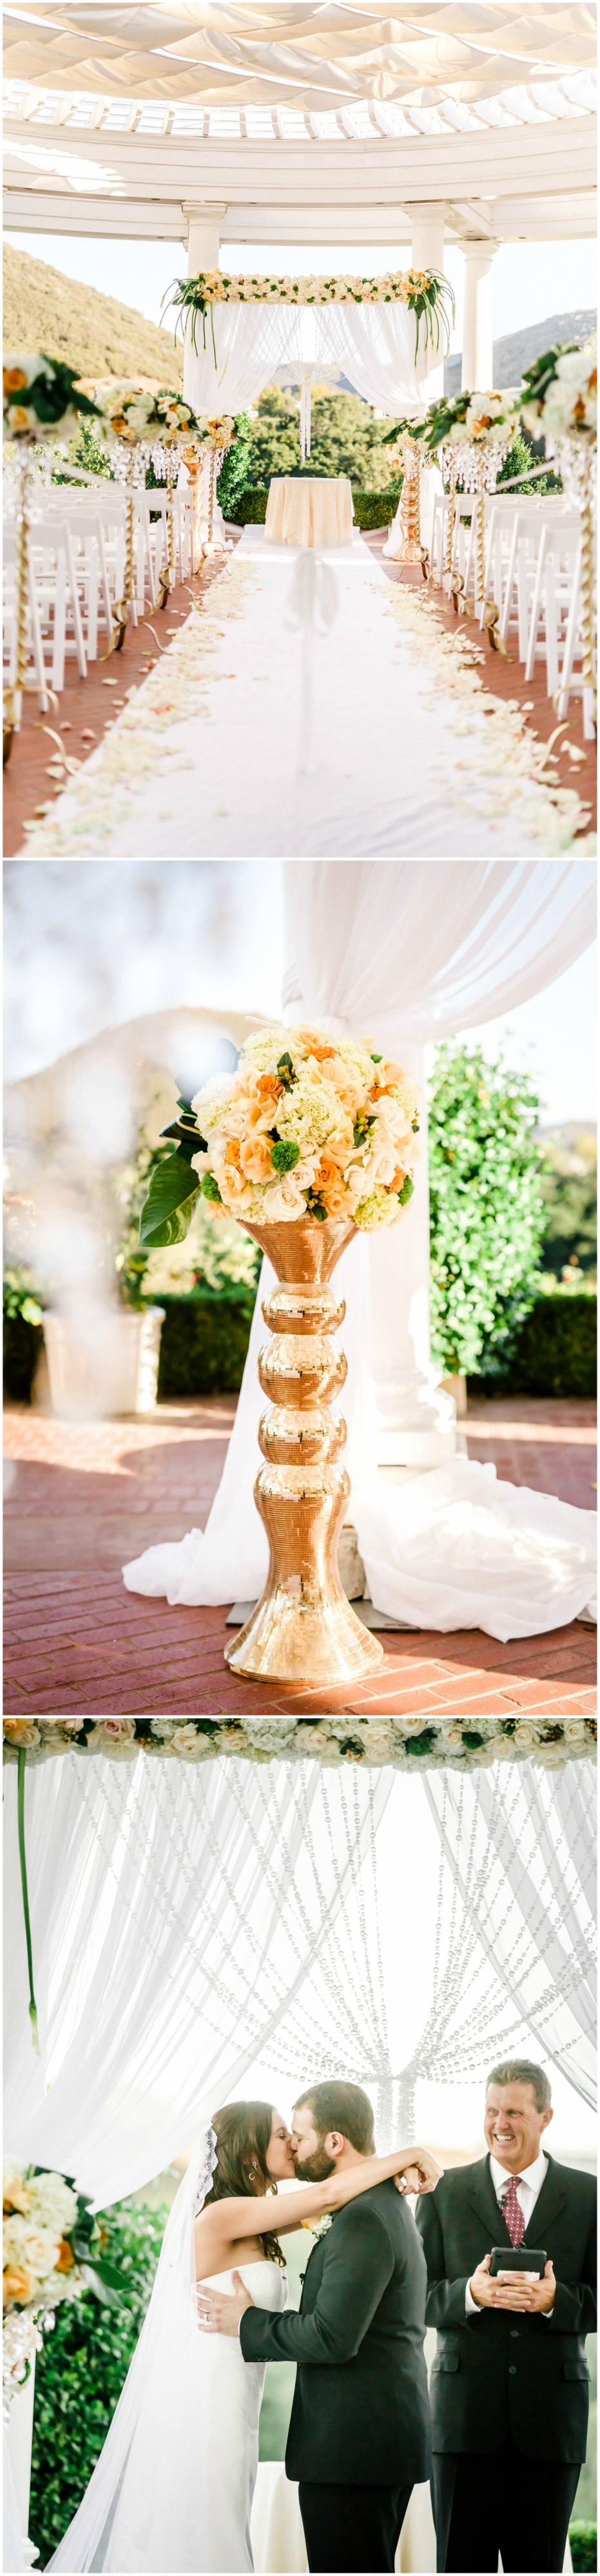 The Smarter Way to Wed | Pinterest | Wedding ceremony ideas ...